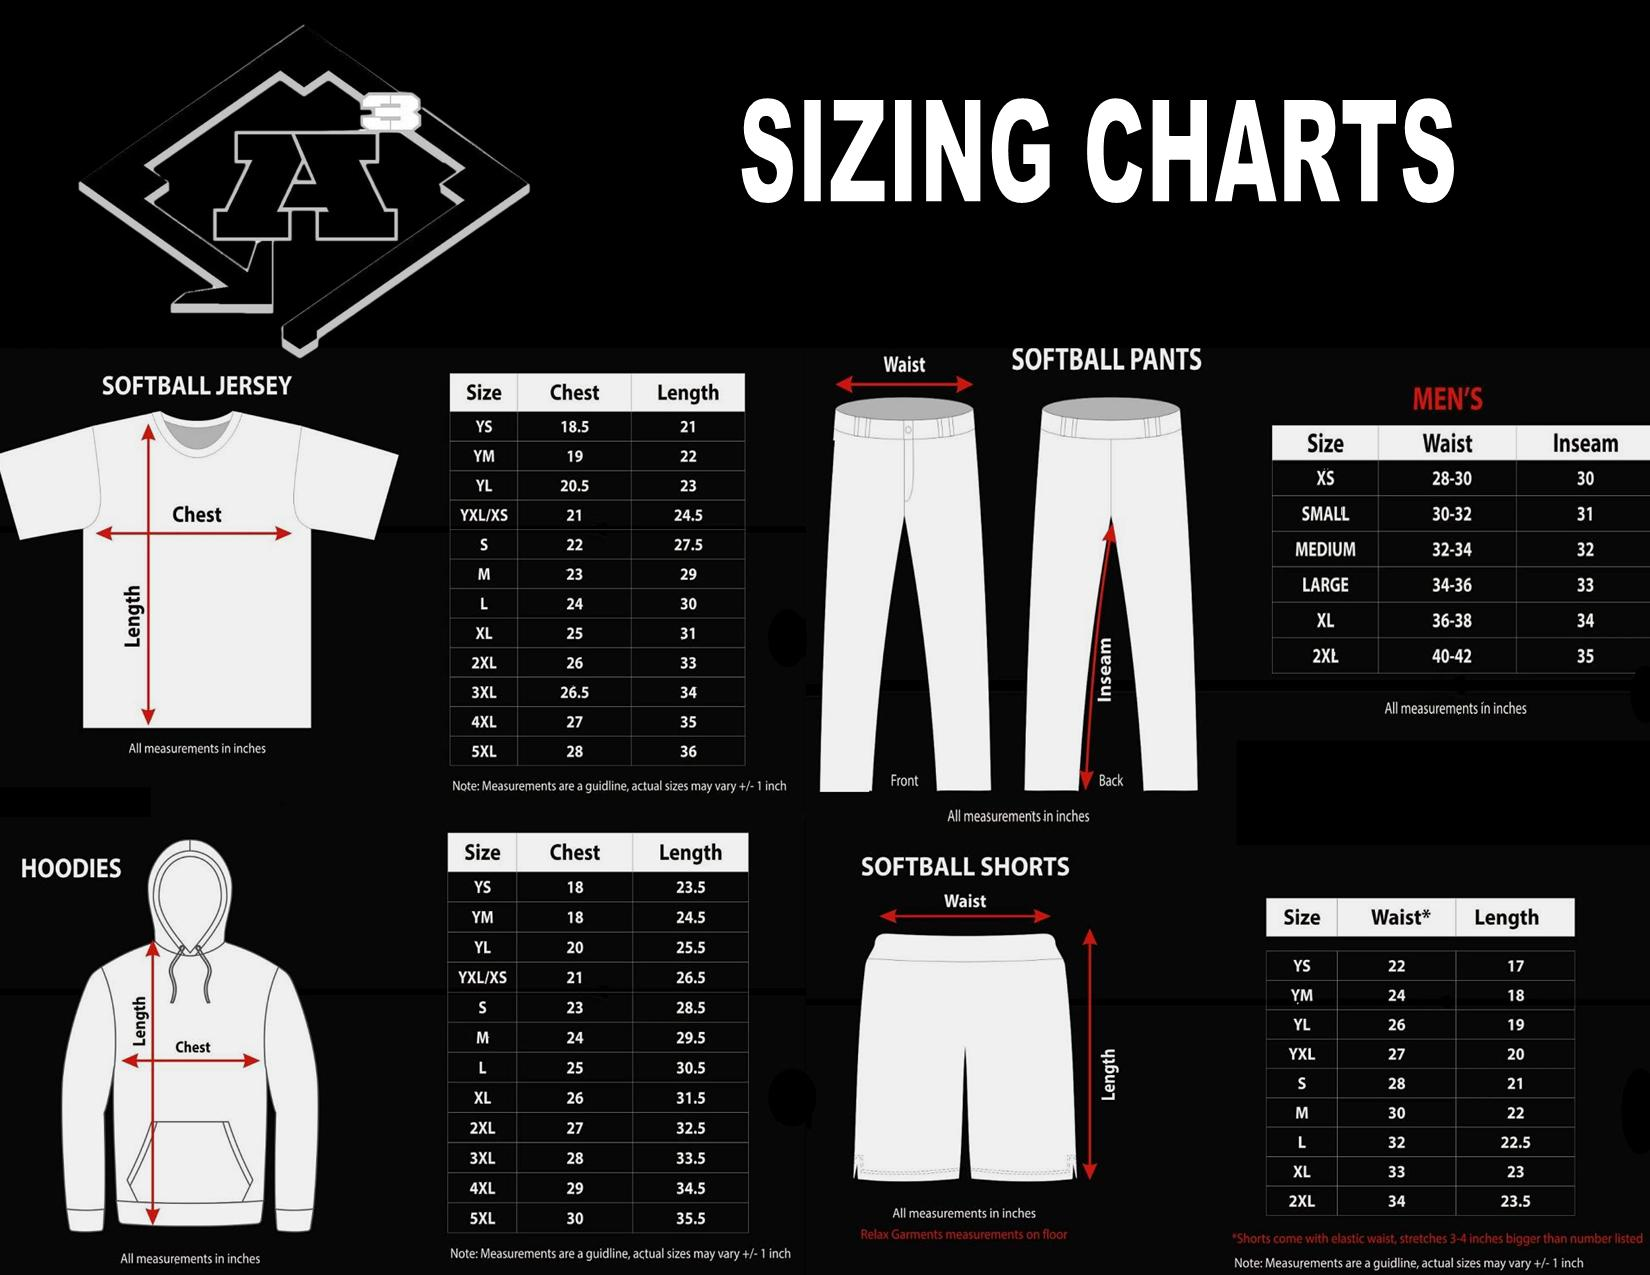 new-sizing-charts.jpg